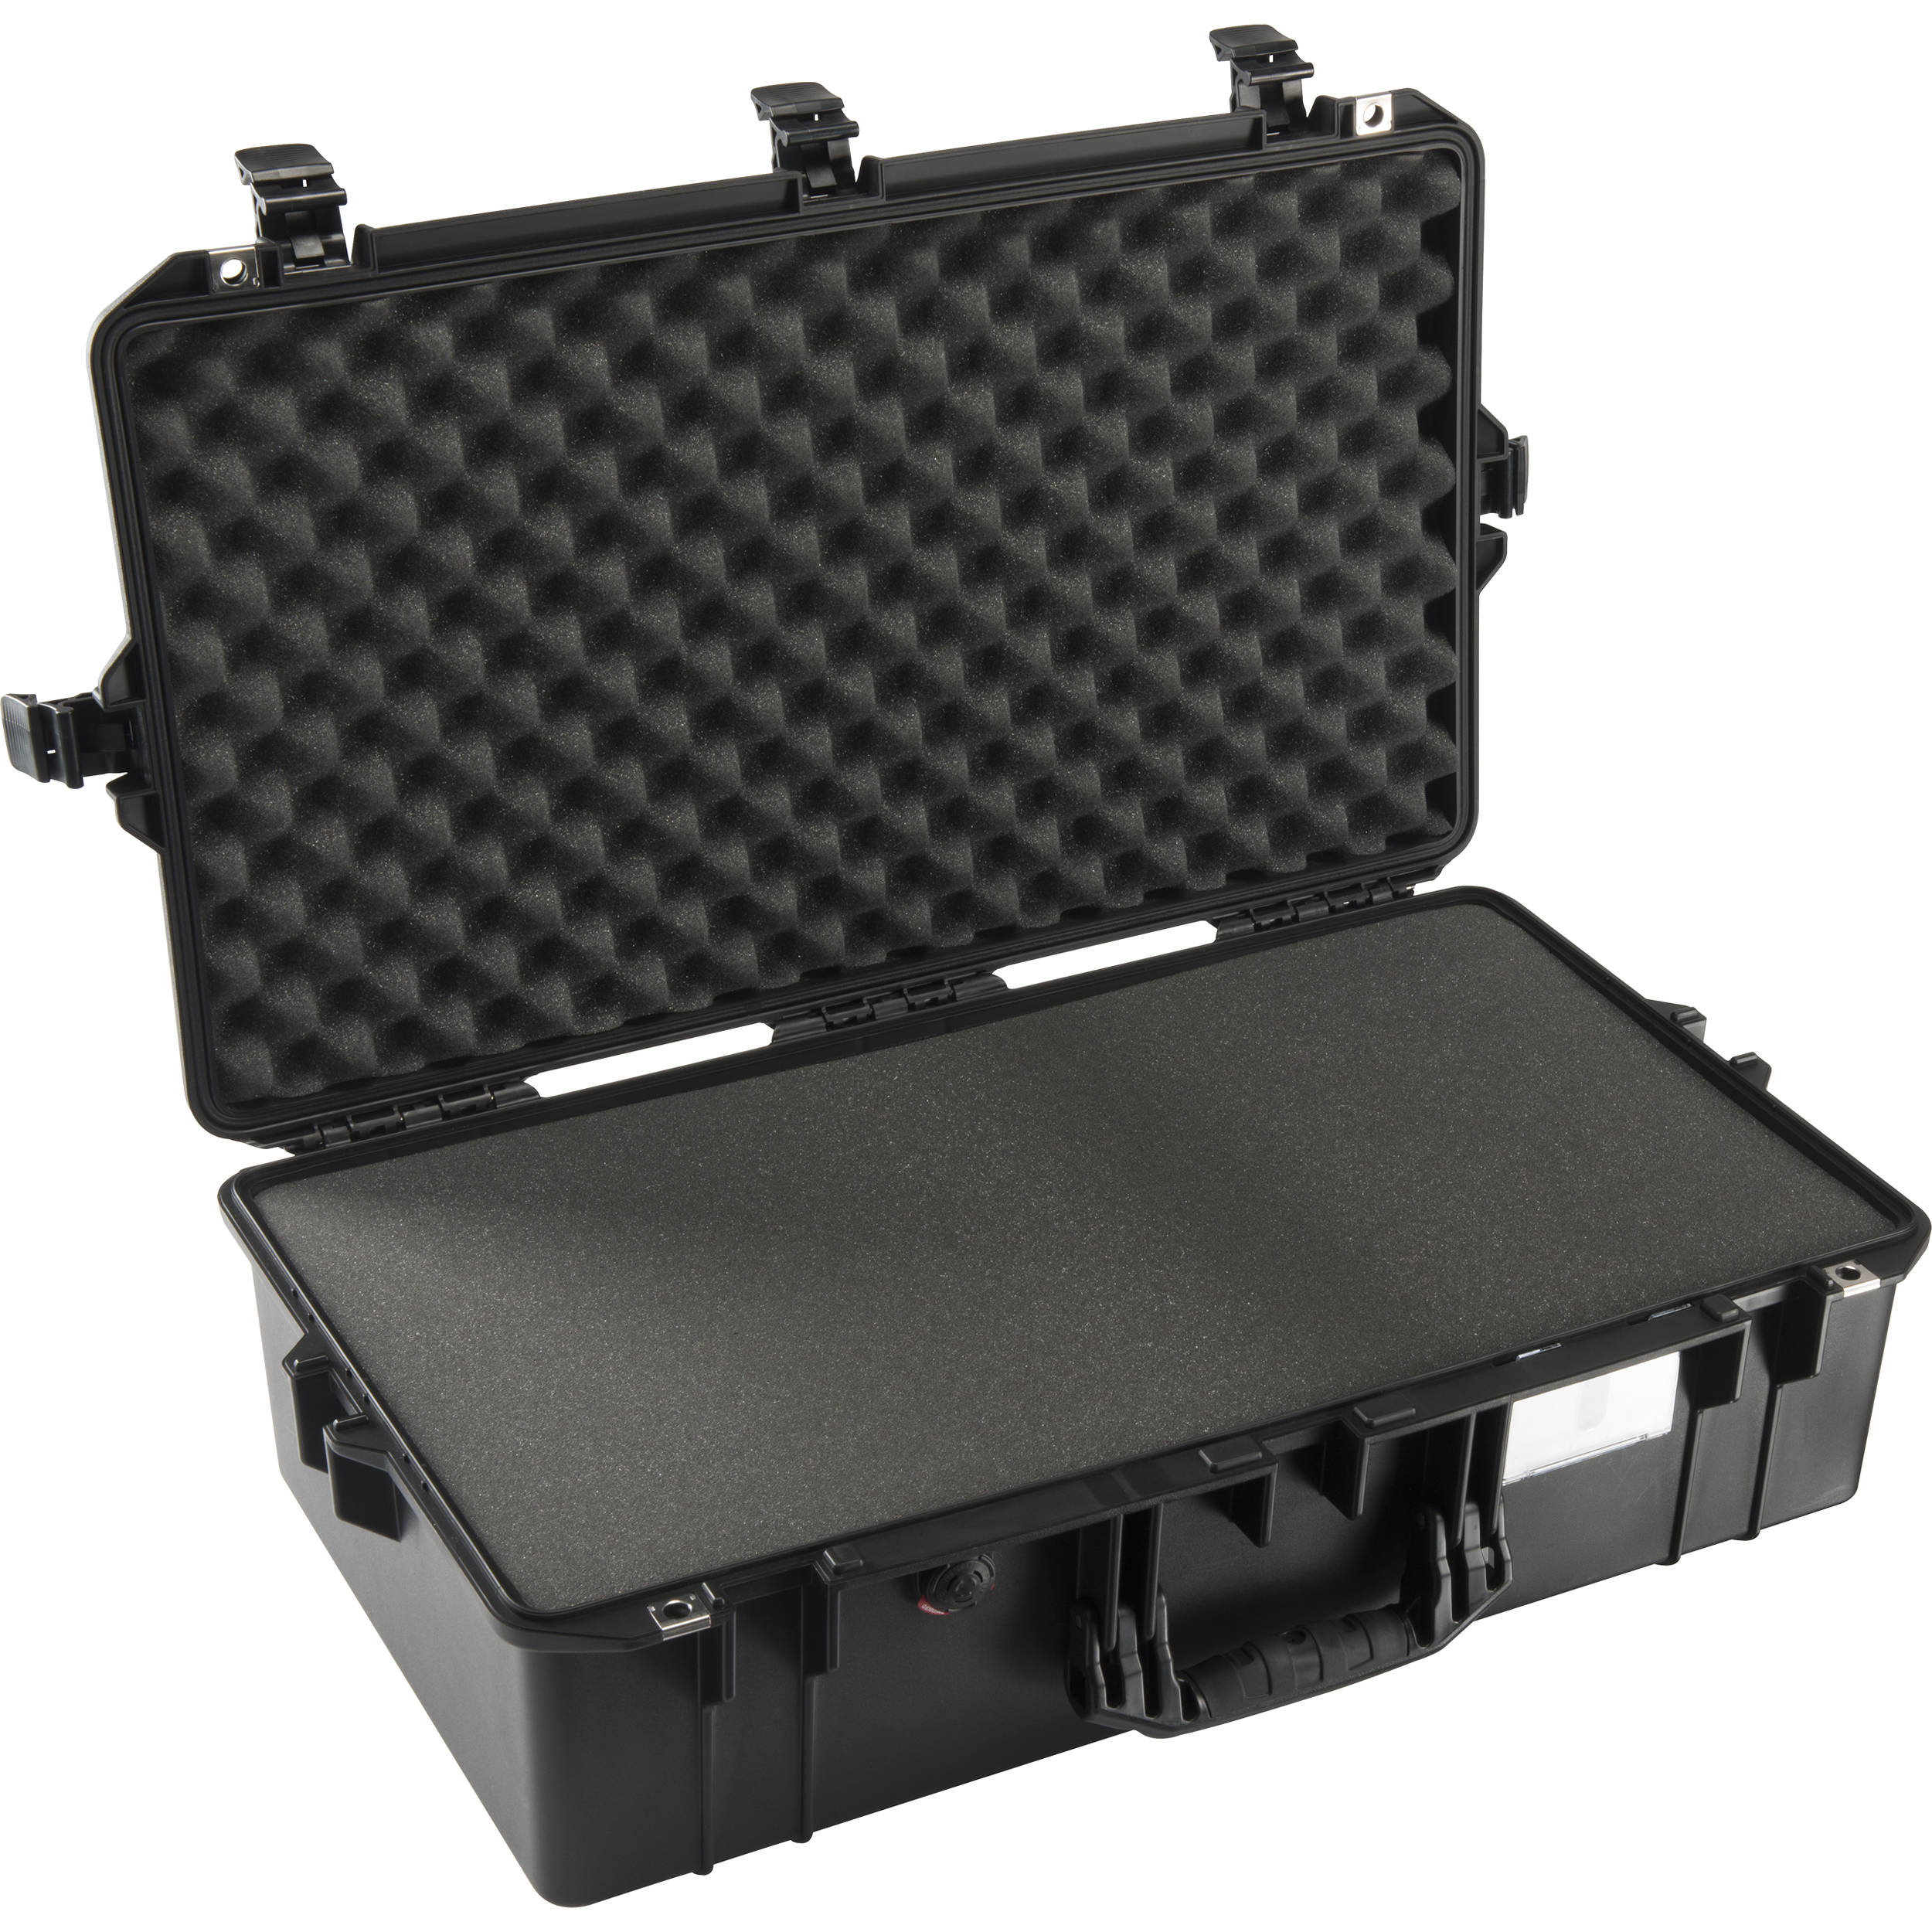 Pelican 1605 Protector Air Case Black PickNPluck Foam